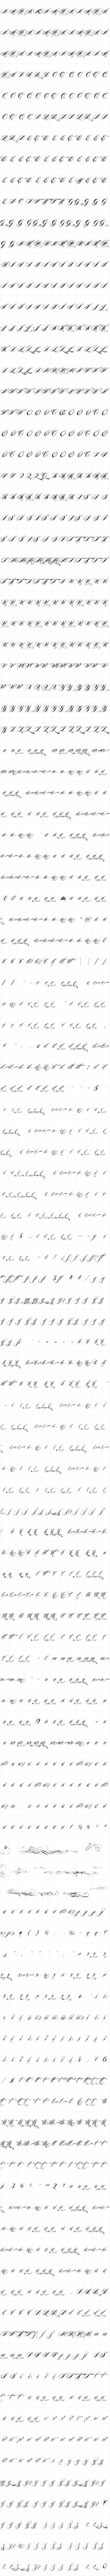 Piel Script-Anamazing amount of variations in one font. Great to play around with! Script Alphabet, Calligraphy Alphabet, Police, Graffiti Tagging, Chalk Lettering, Flourishes, Writing Tips, Handwriting, Tattoo Ideas